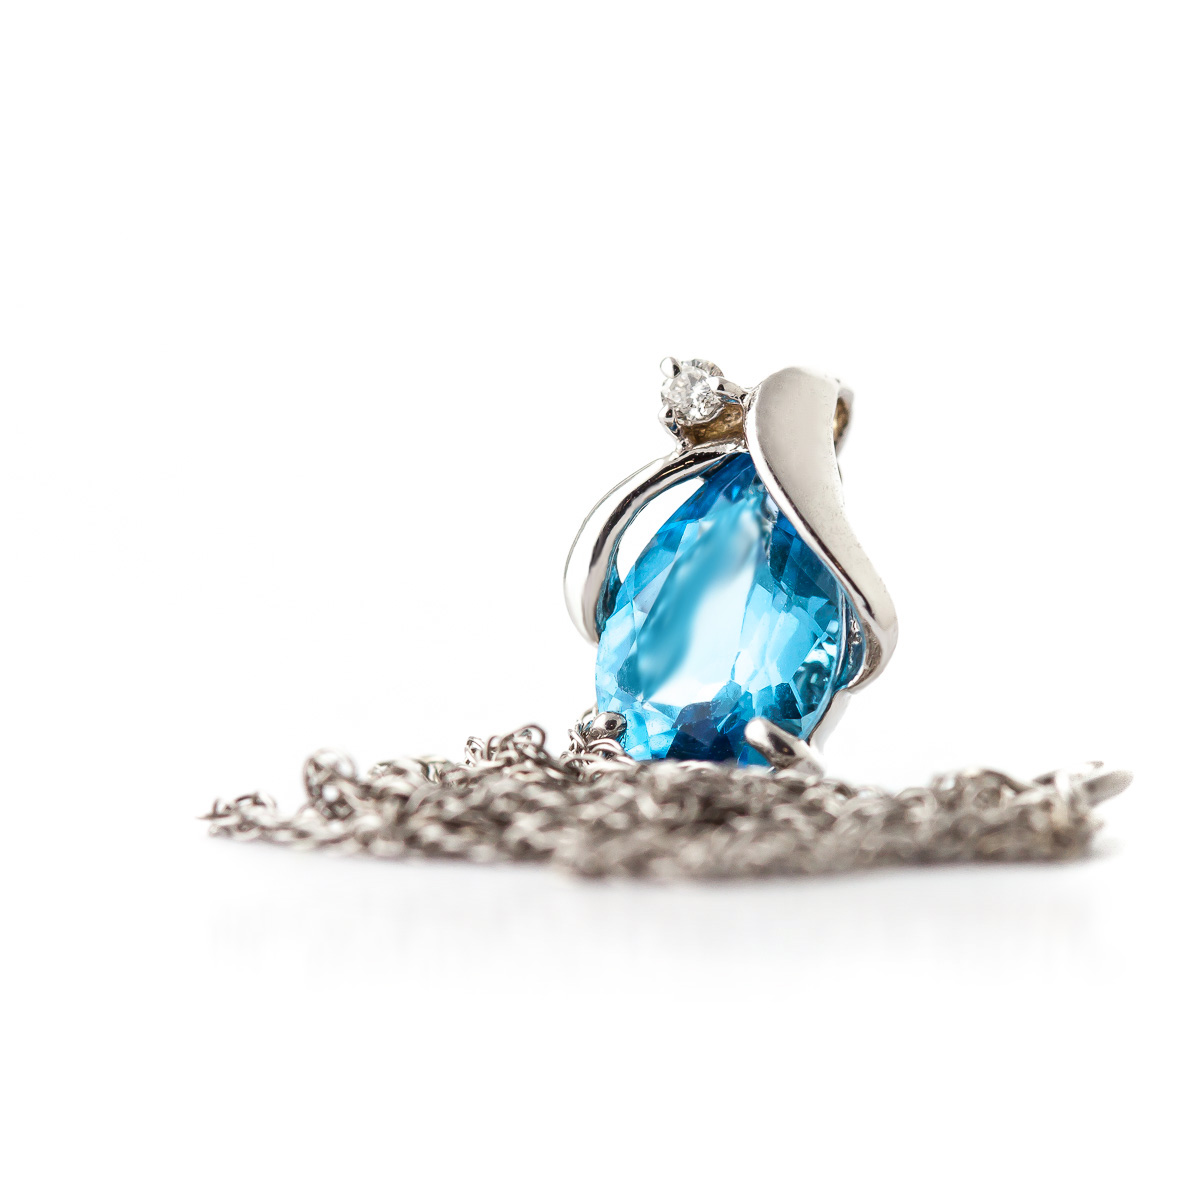 Blue Topaz and Diamond Pendant Necklace 2.5ct in 14K White Gold